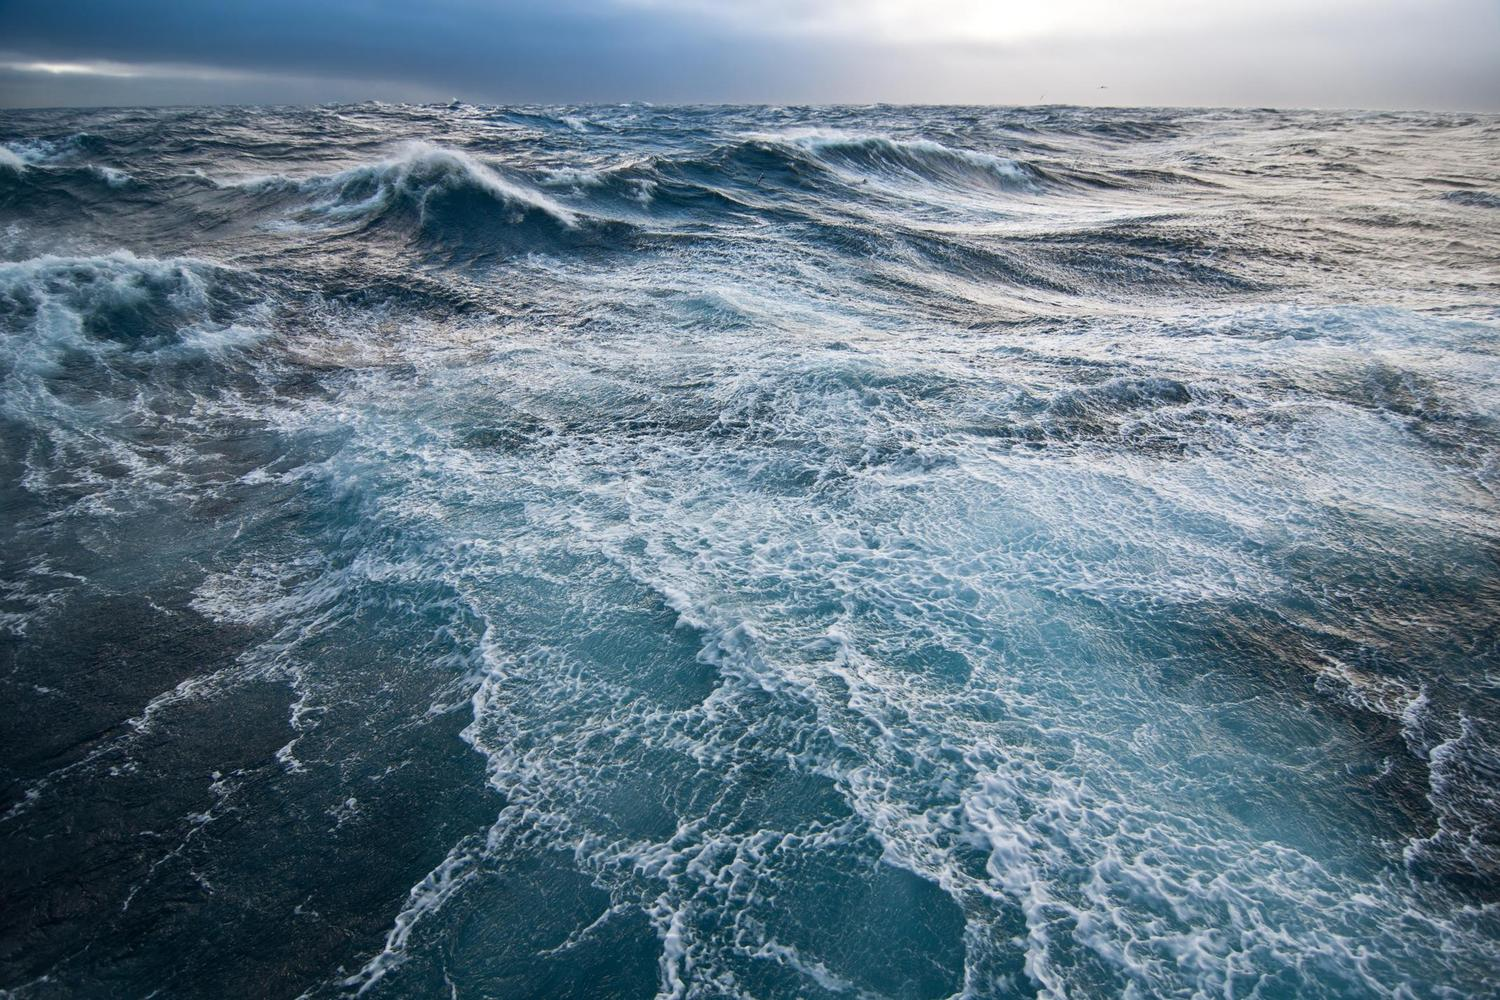 The moody waters of the Drake Passage